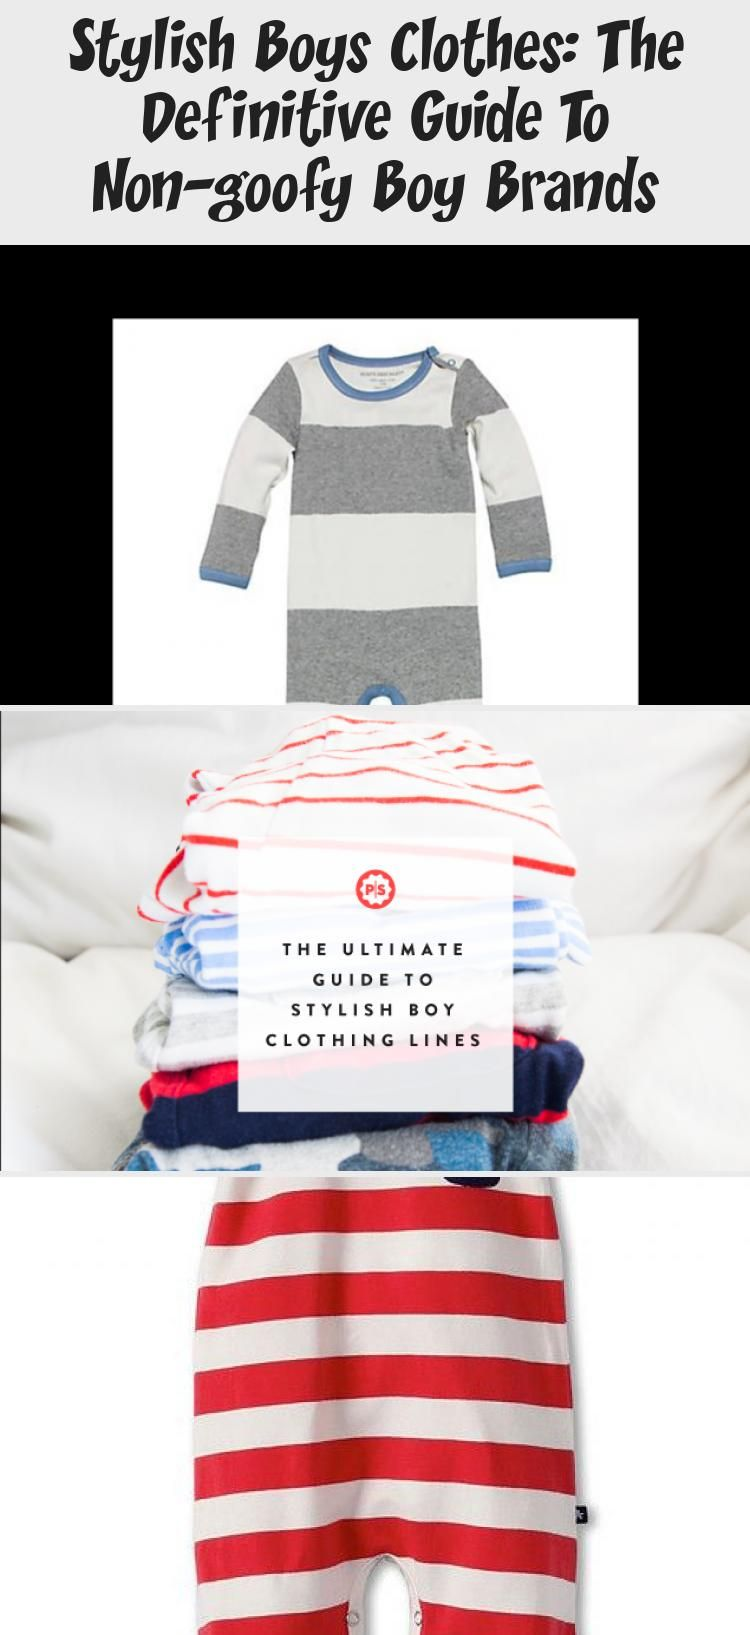 Stylish Boys Clothes The Definitive Guide To Non Goofy Boy Brands In 2020 Stylish Boy Clothes Stylish Boys Boy Outfits